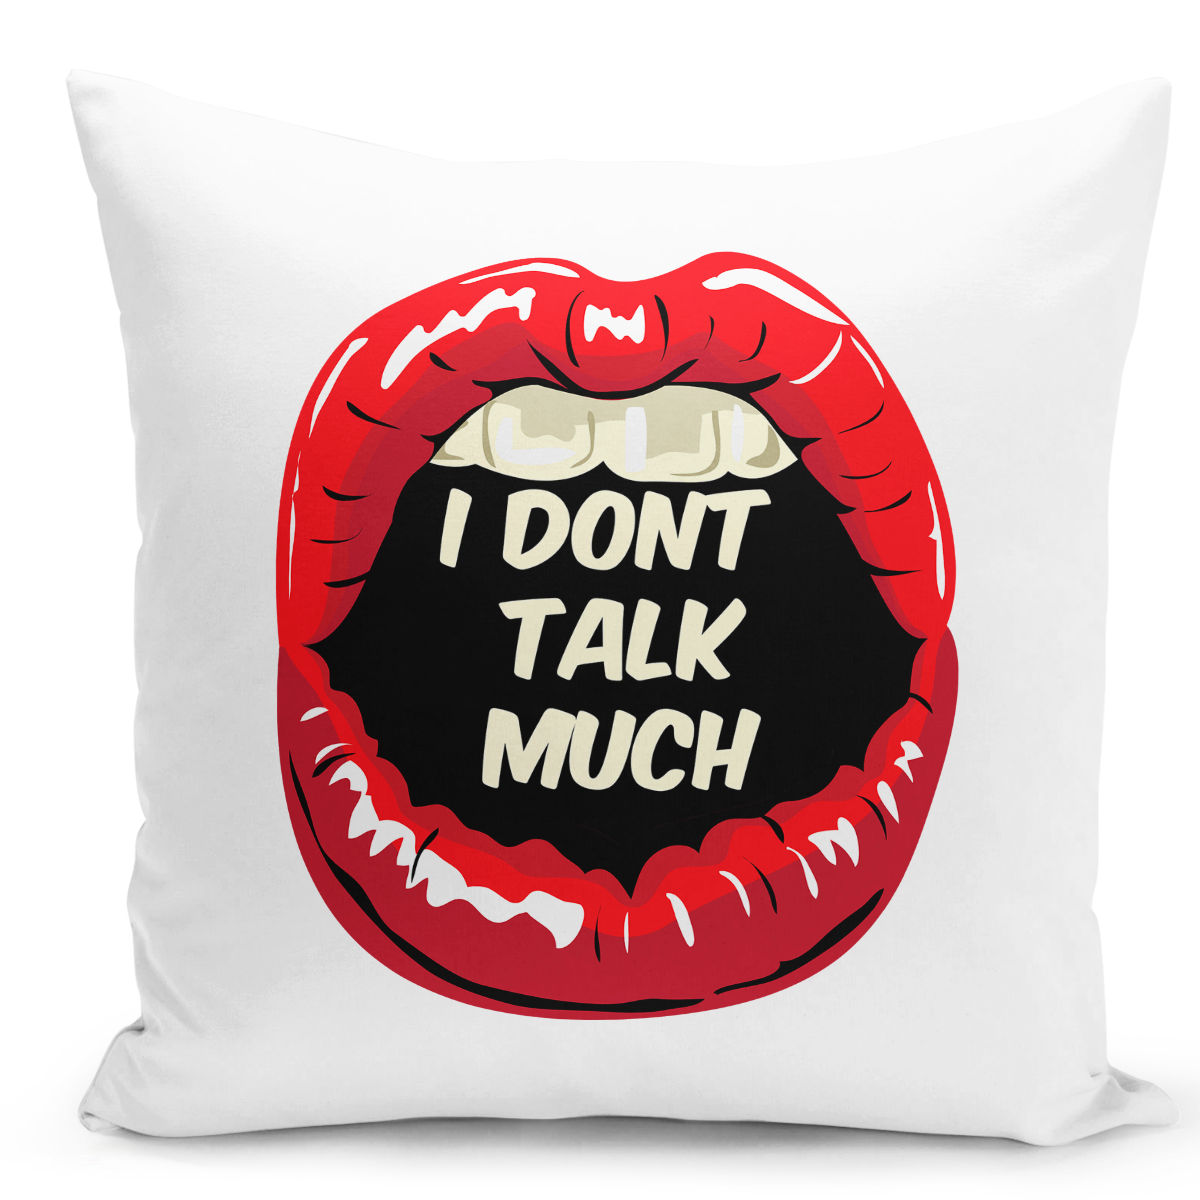 16x16-inch-Throw-Pillow-for-Home-Decor-with-Stuffing-i-Dont-Talk-Much-Red-Lipstick-Women-Pillow-